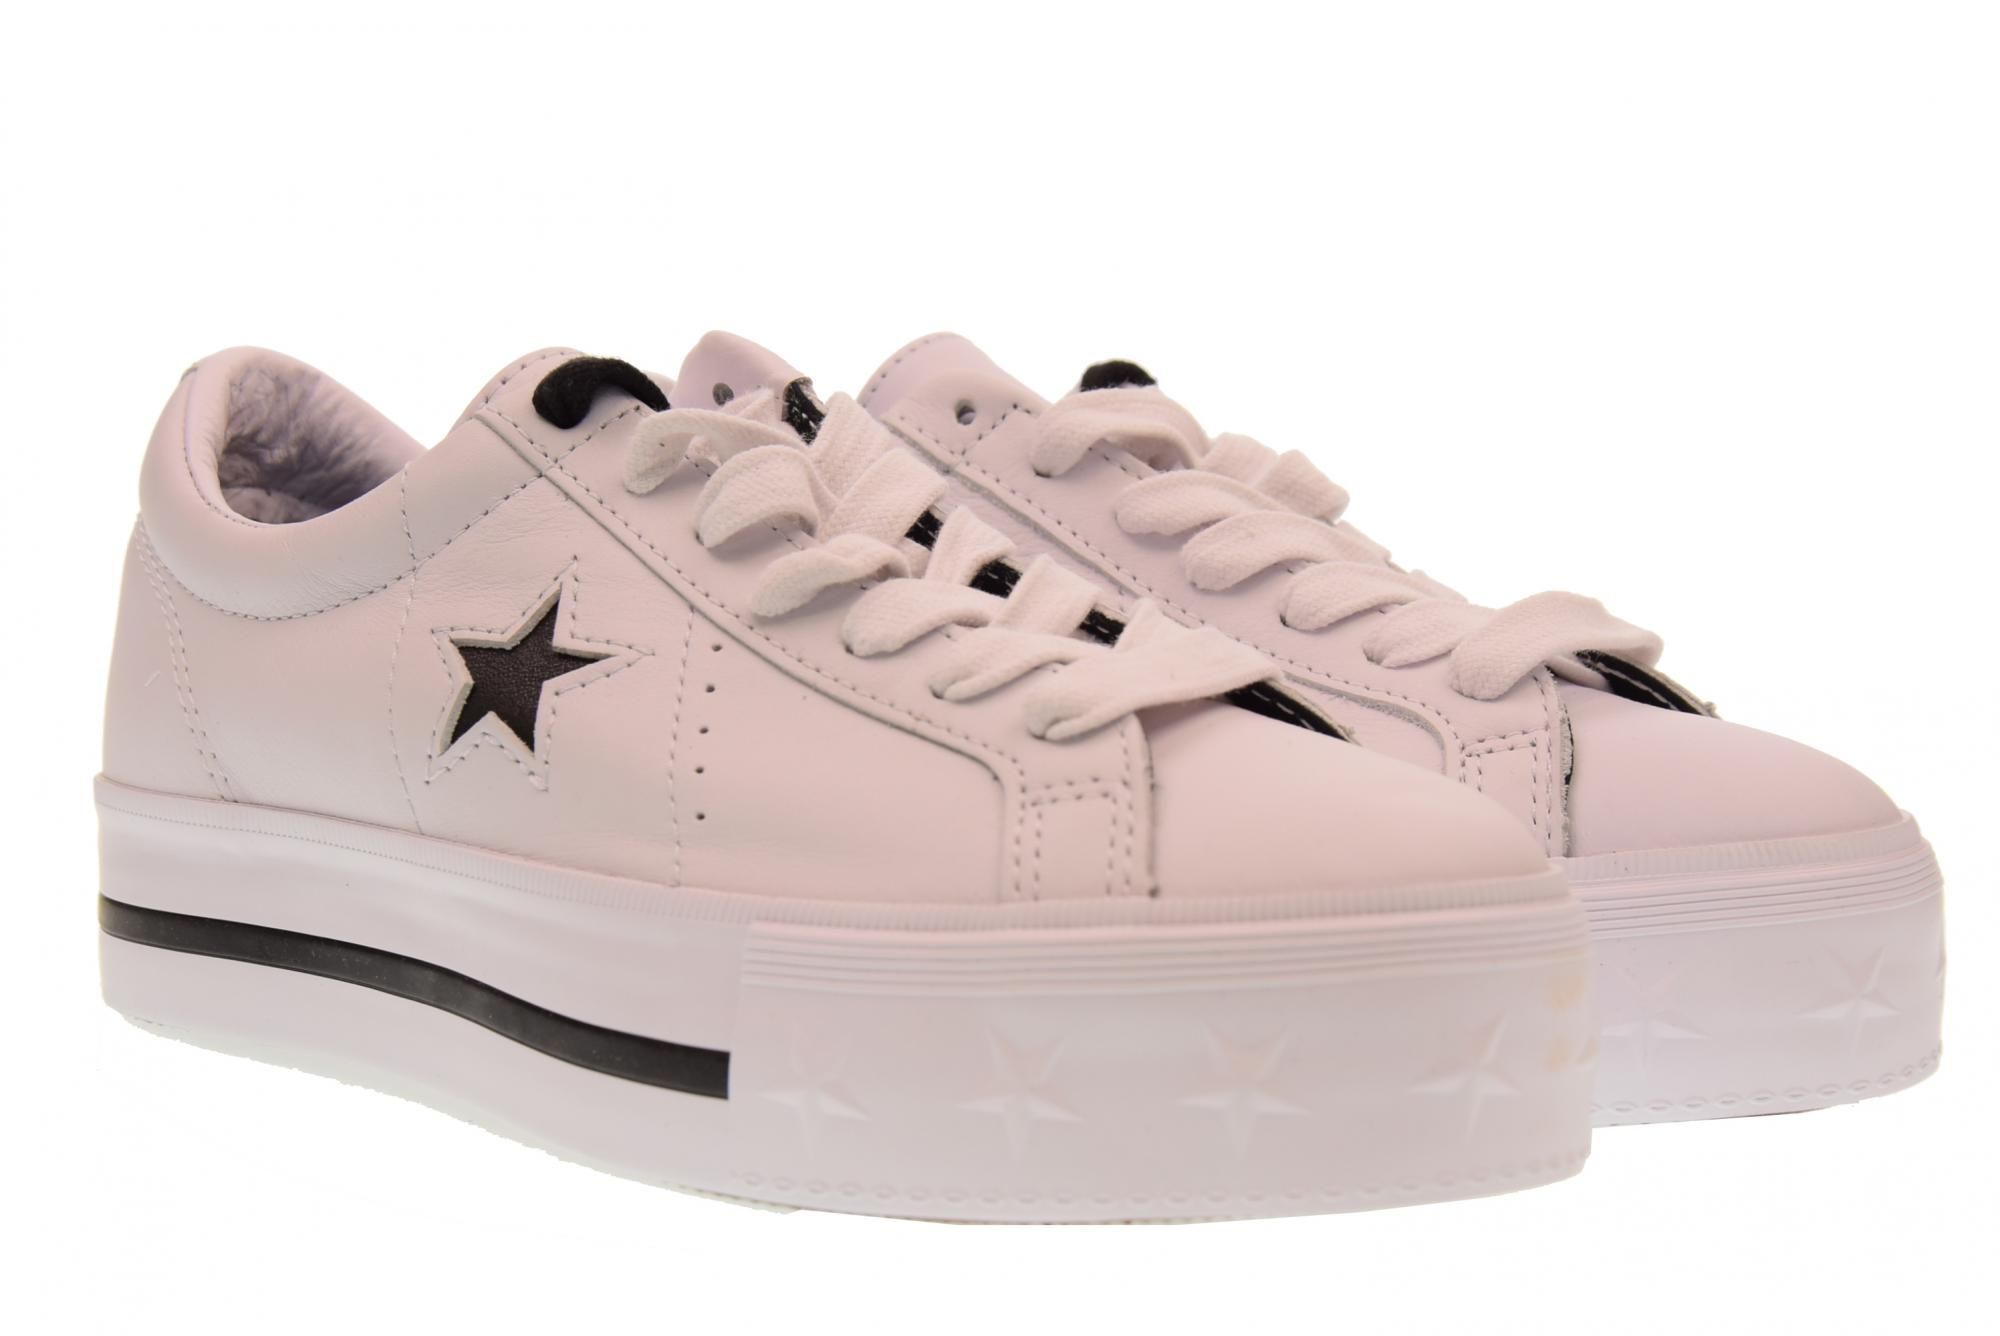 Converse A18u shoes woman low platform sneakers 562735C ONE STAR PLATFORM OX 9b0601d2947